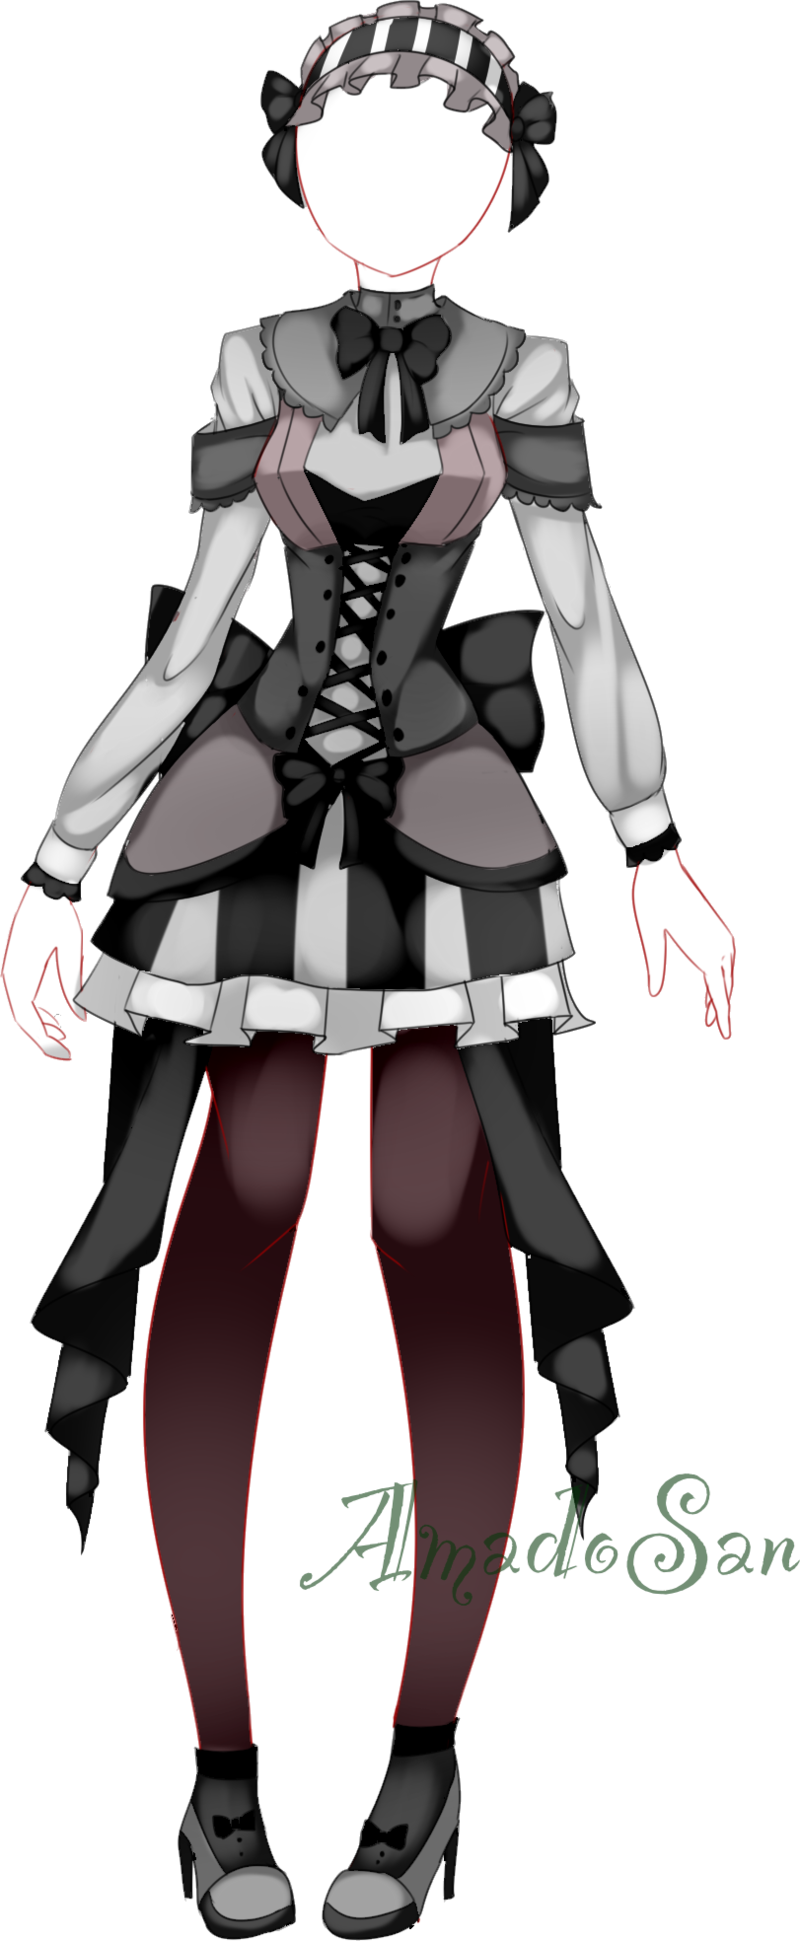 Gothic loli dress outfit adoptable CLOSED by AS-Adoptables.deviantart.com on @DeviantArt ...